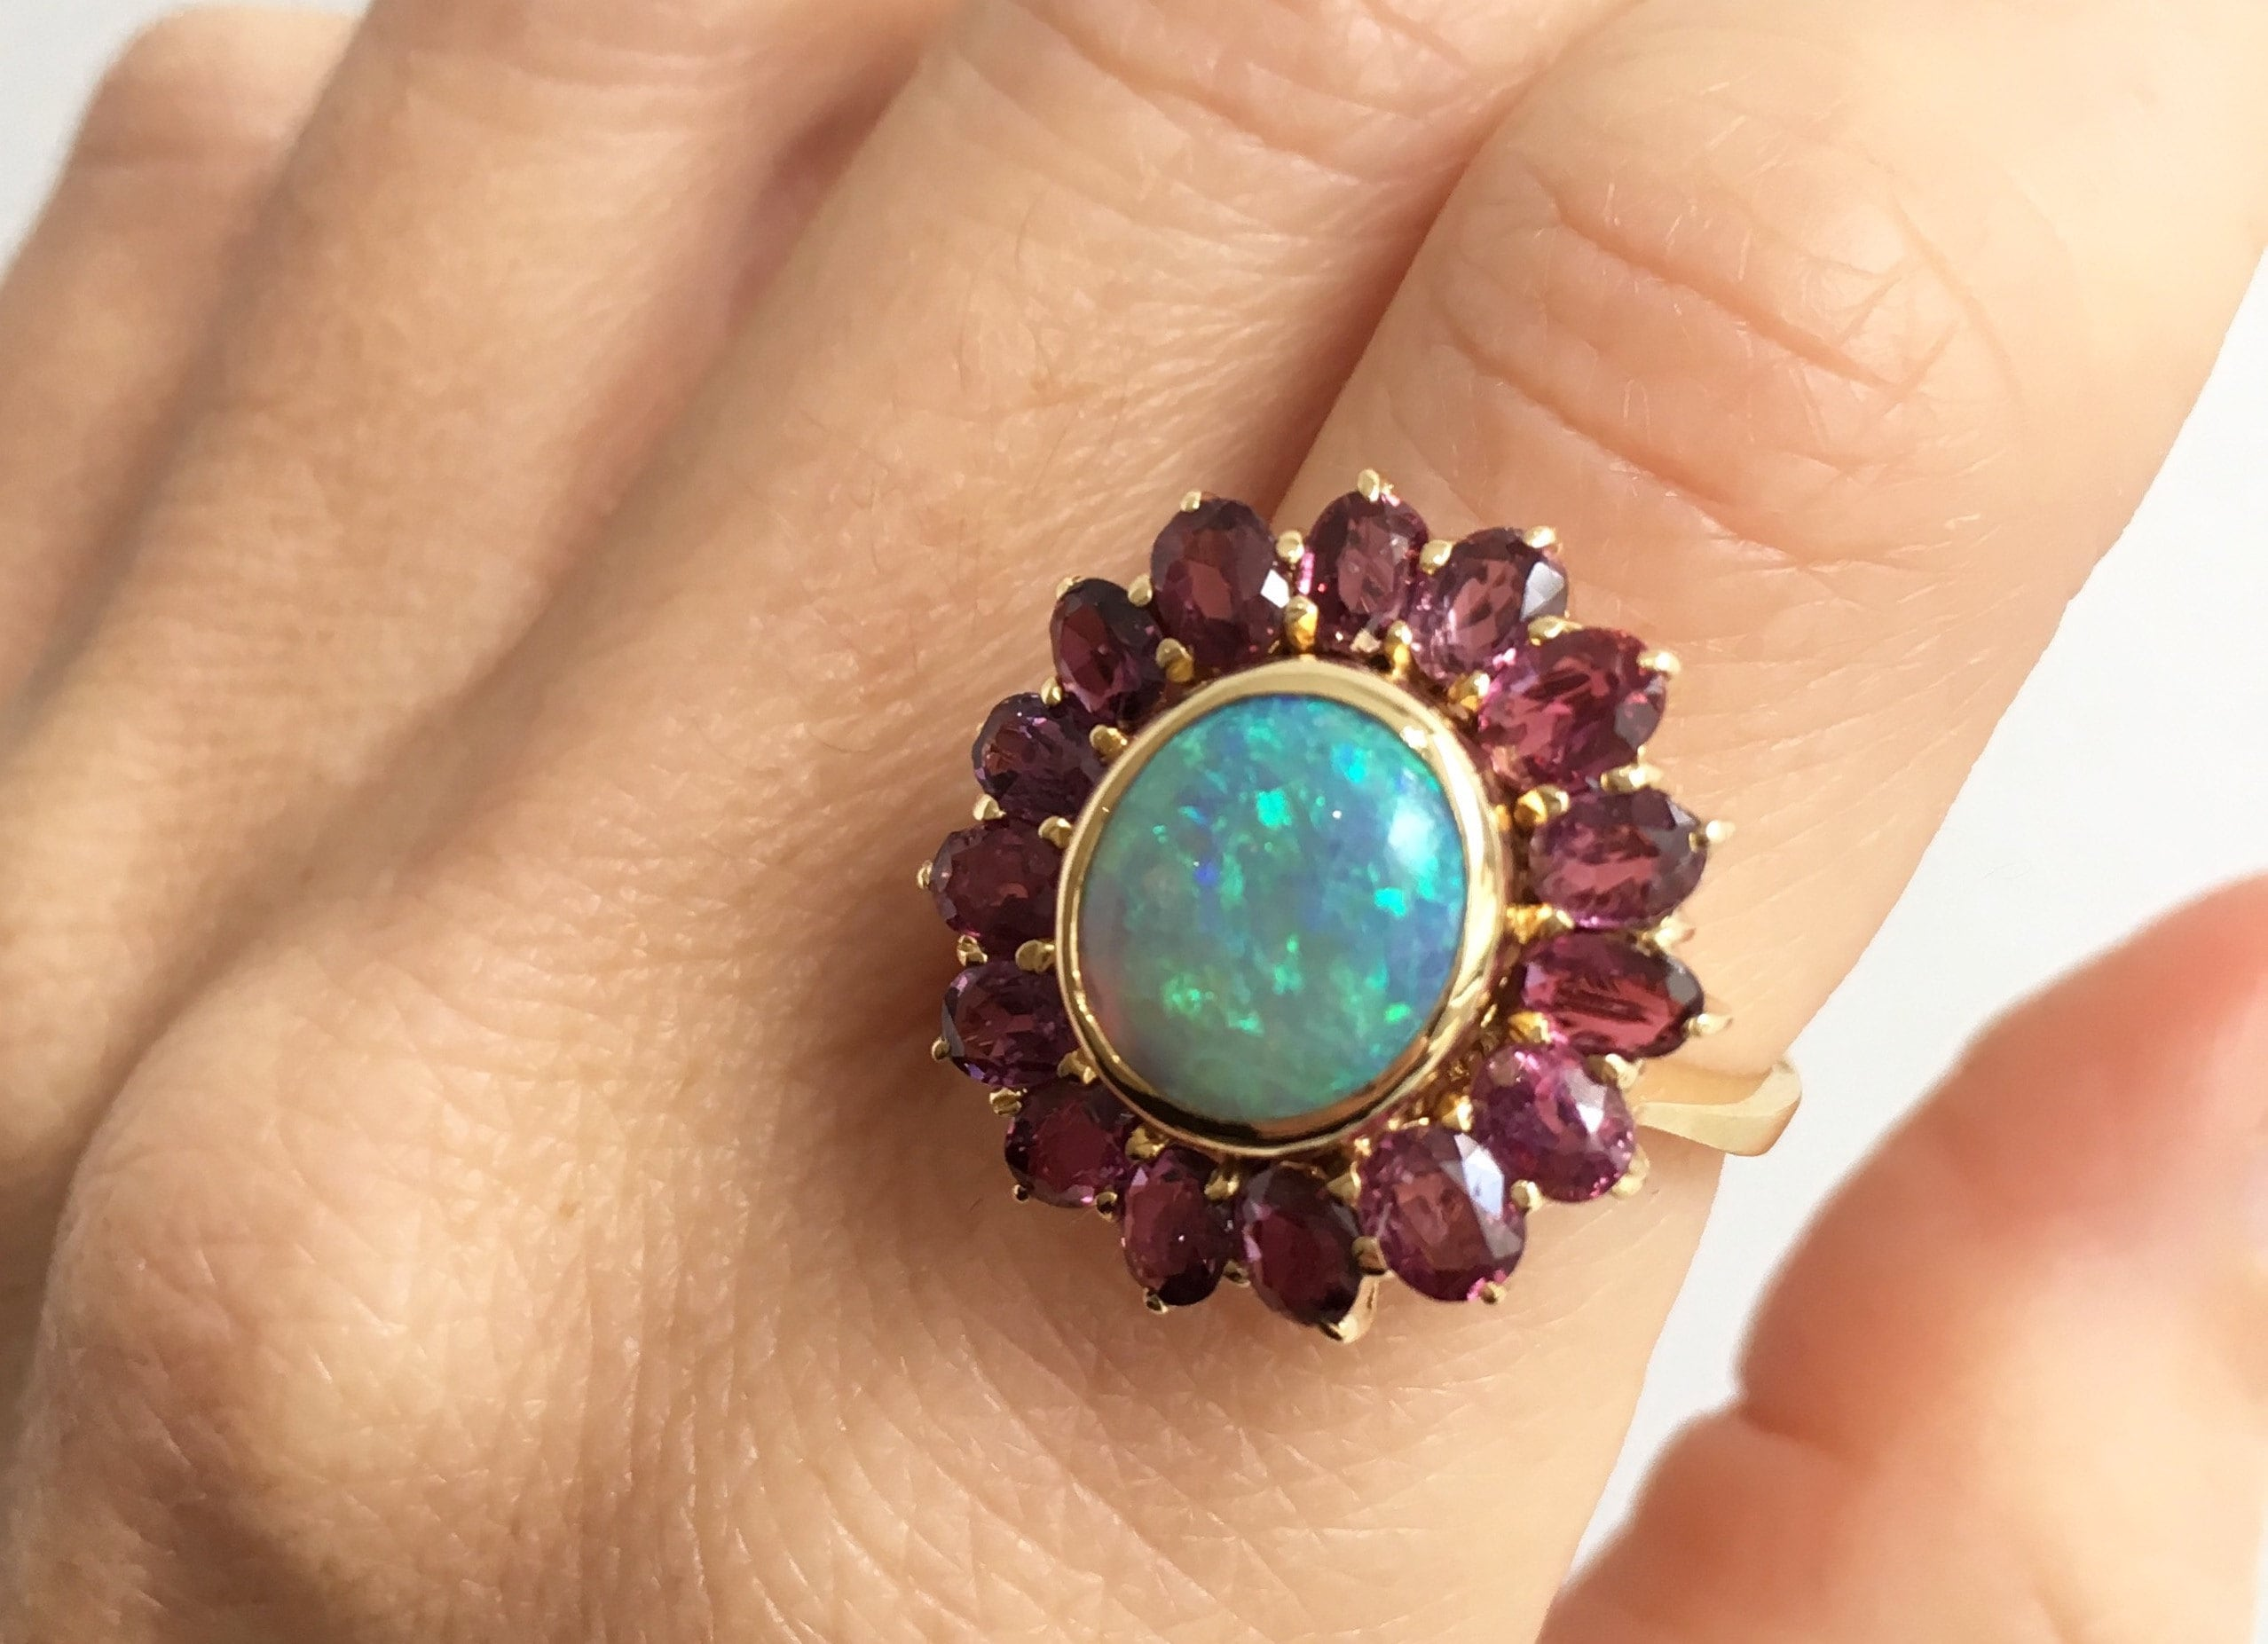 Black-Fiery-Australian-Opal-Ballerina-Ring-gold-rubies-flower-shaped Buffalo Jeweler